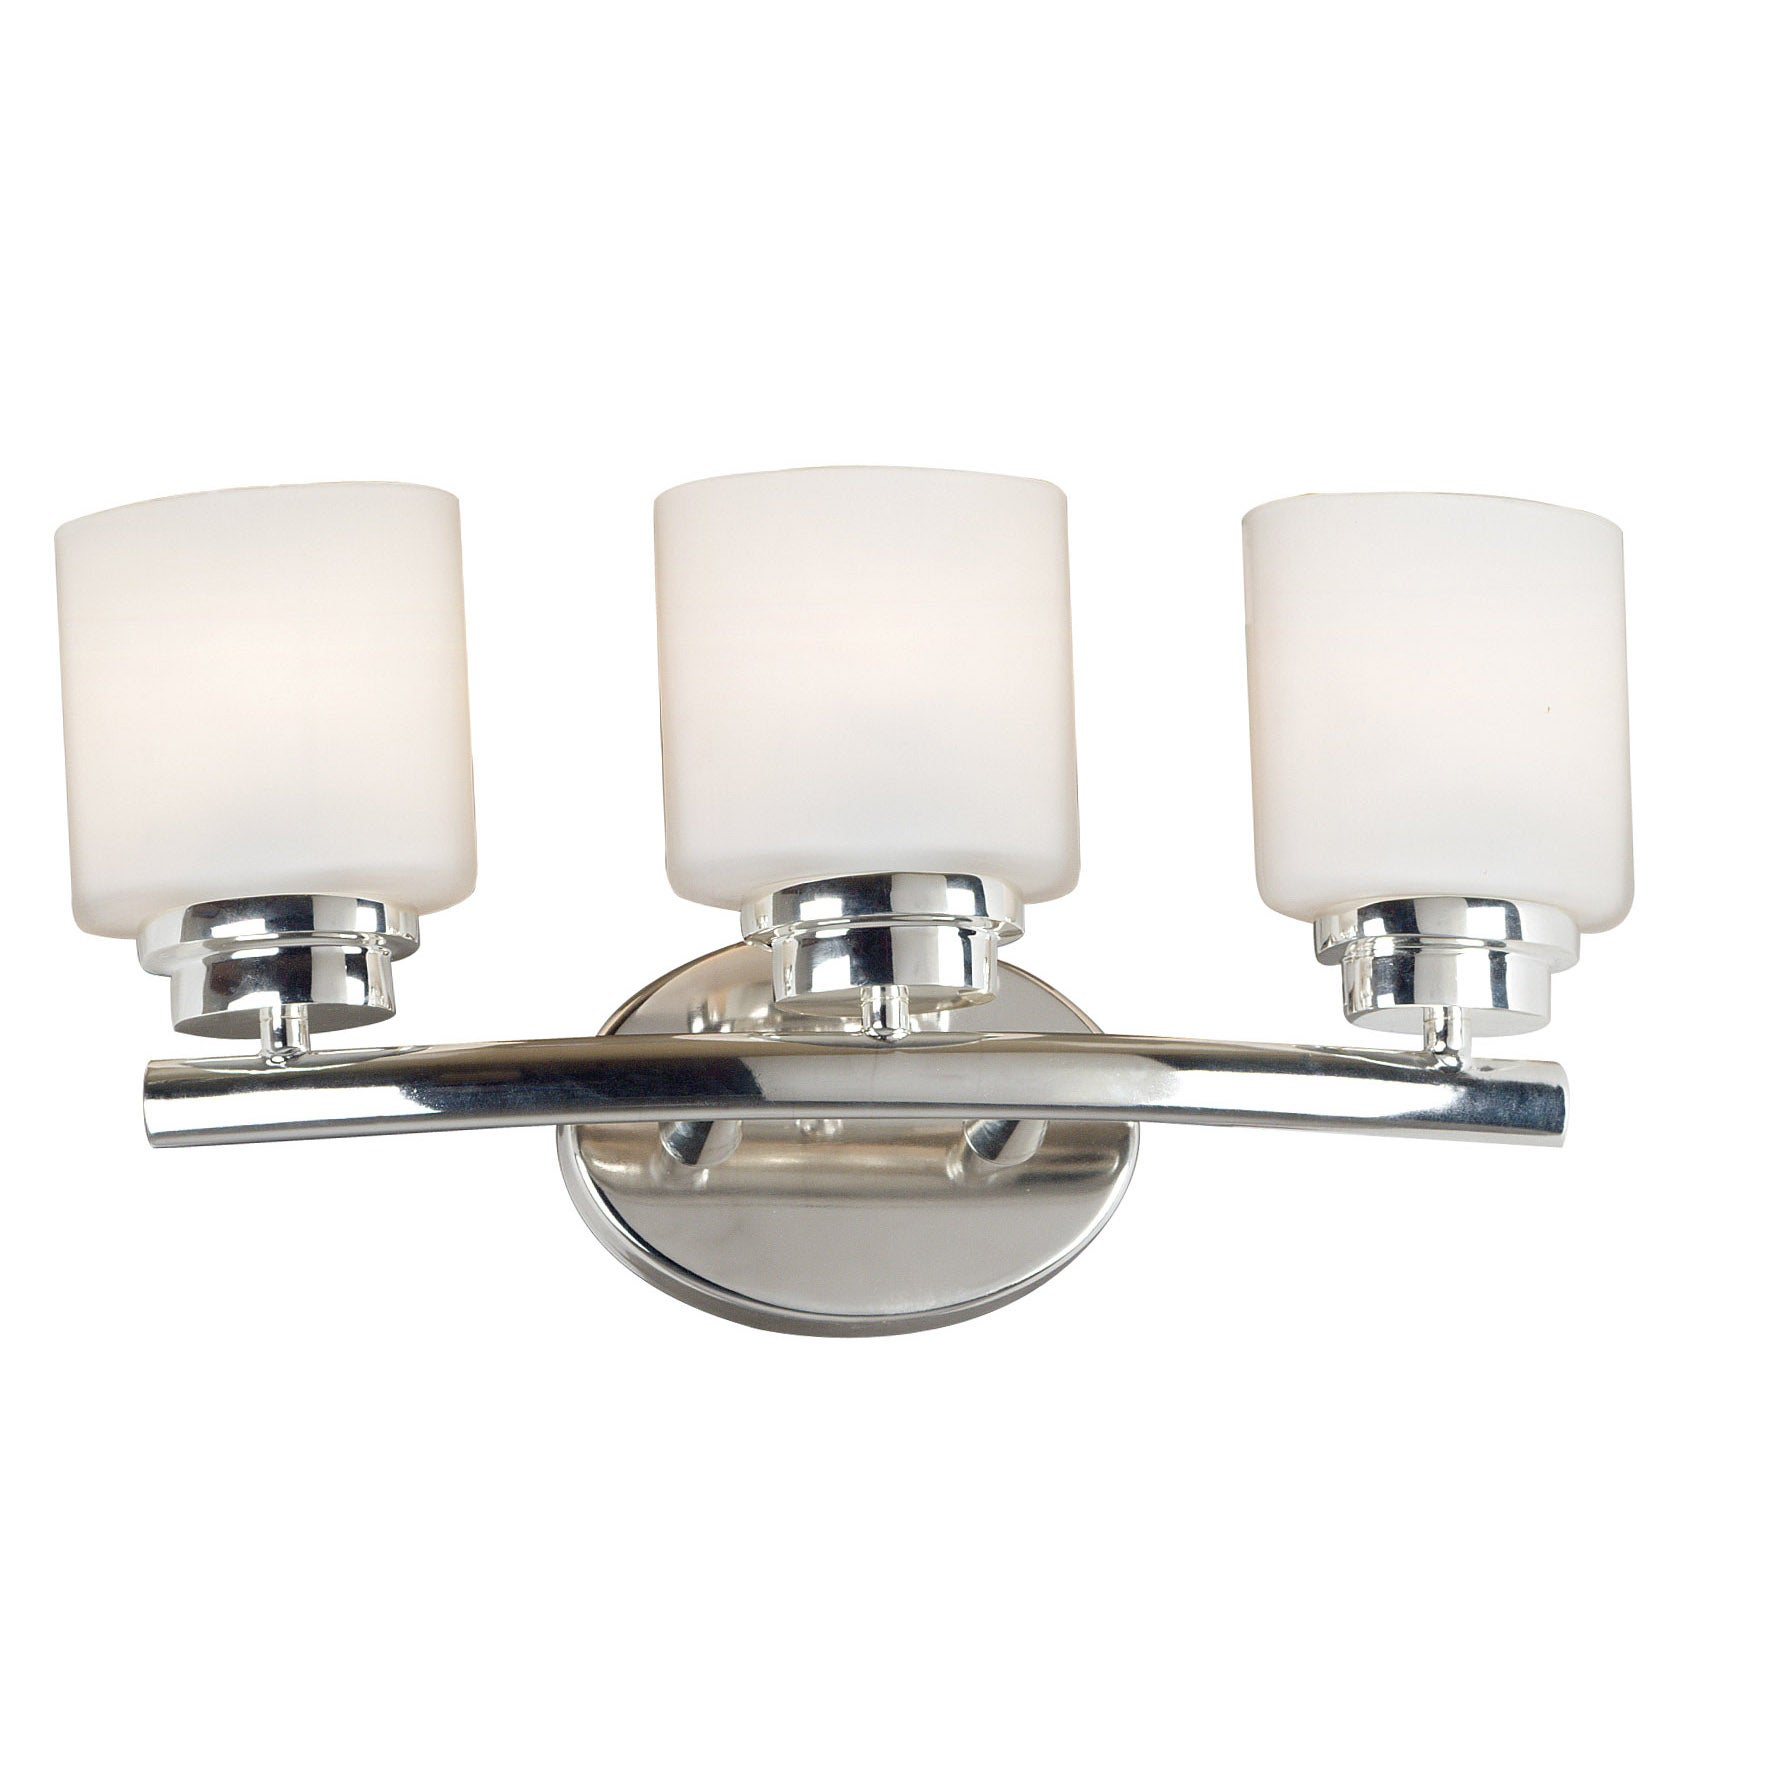 Jezebel 9-inch High with Polished Nickel Finish 3-light Vanity